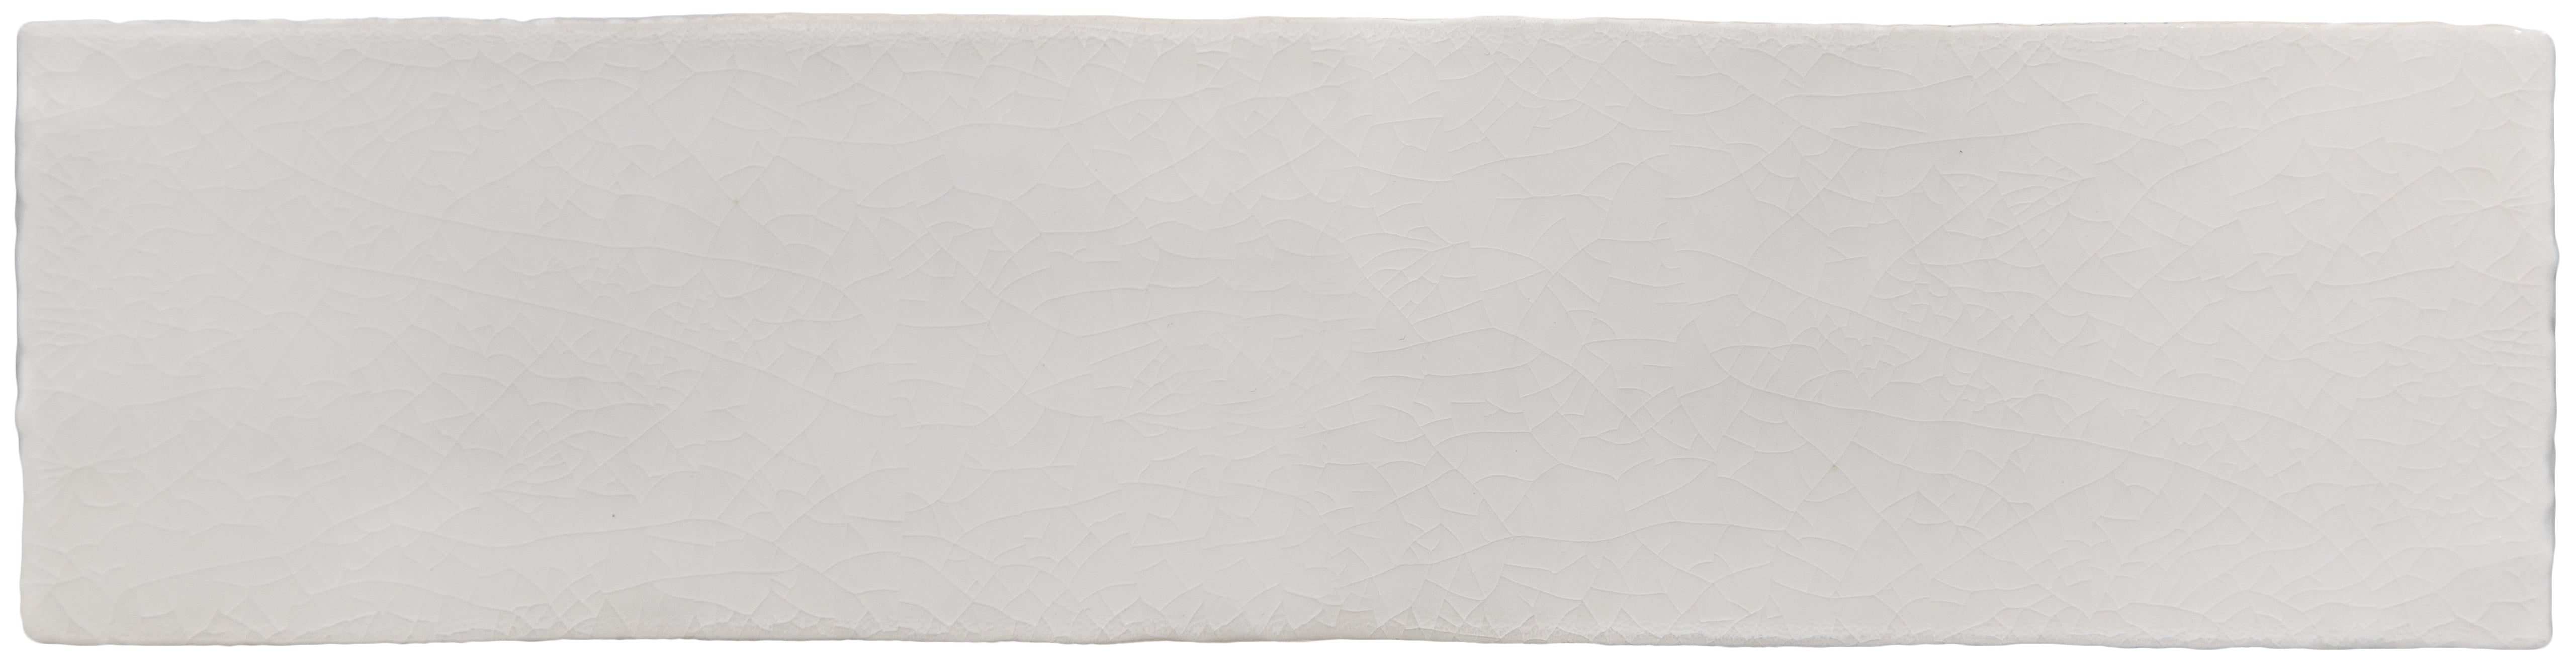 B Train White Field Tile product photo